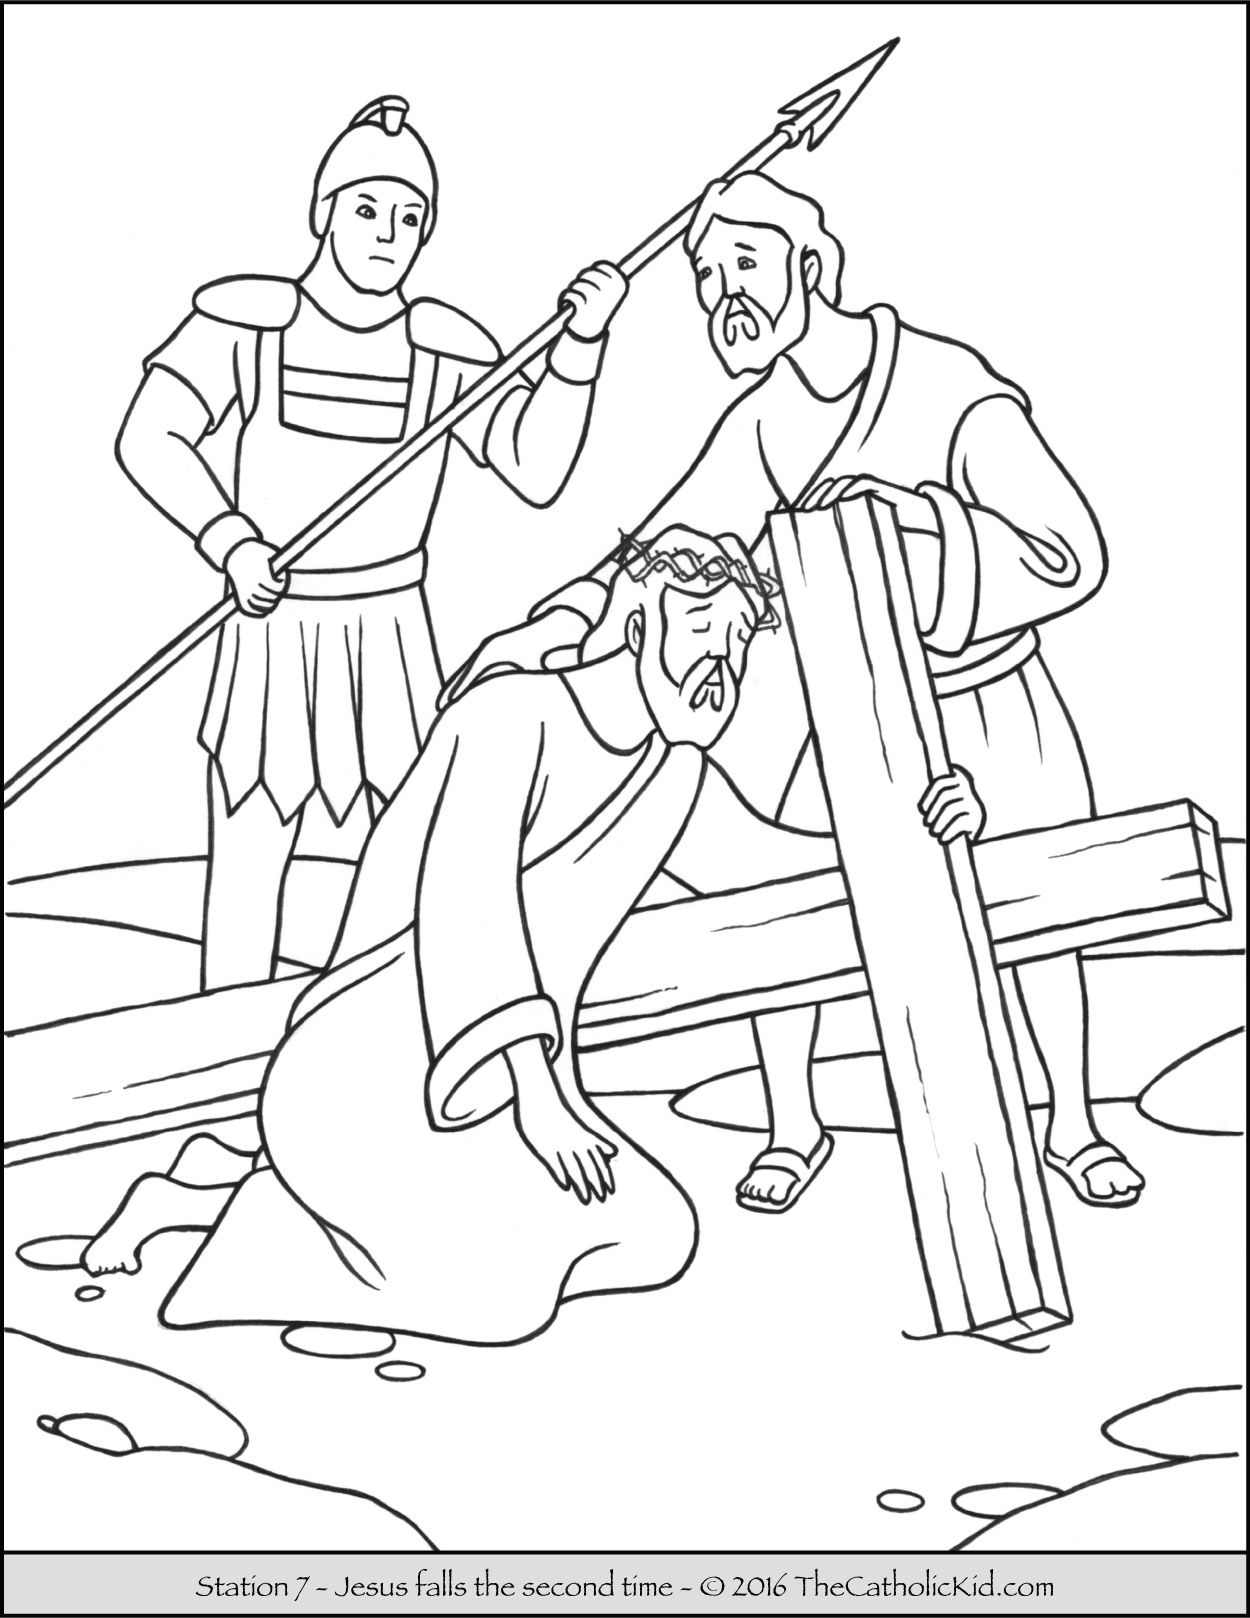 jesus heals jairus daughter coloring pages Collection-Stations of the Cross Coloring Pages 7 Jesus Falls the Second Time 9-p